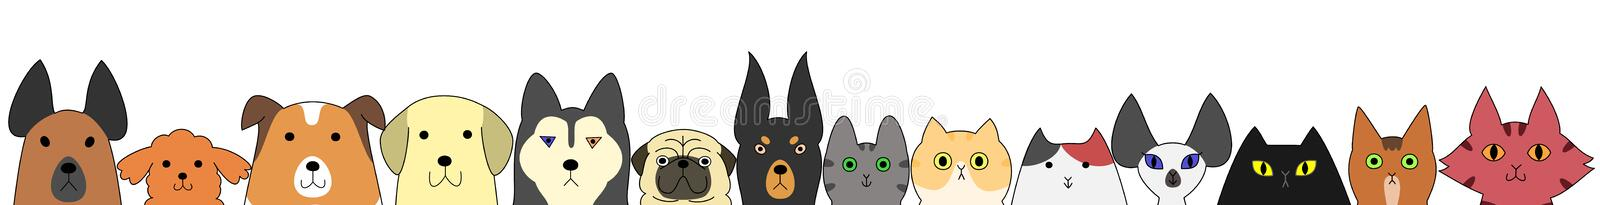 Dogs and cats banner vector illustration